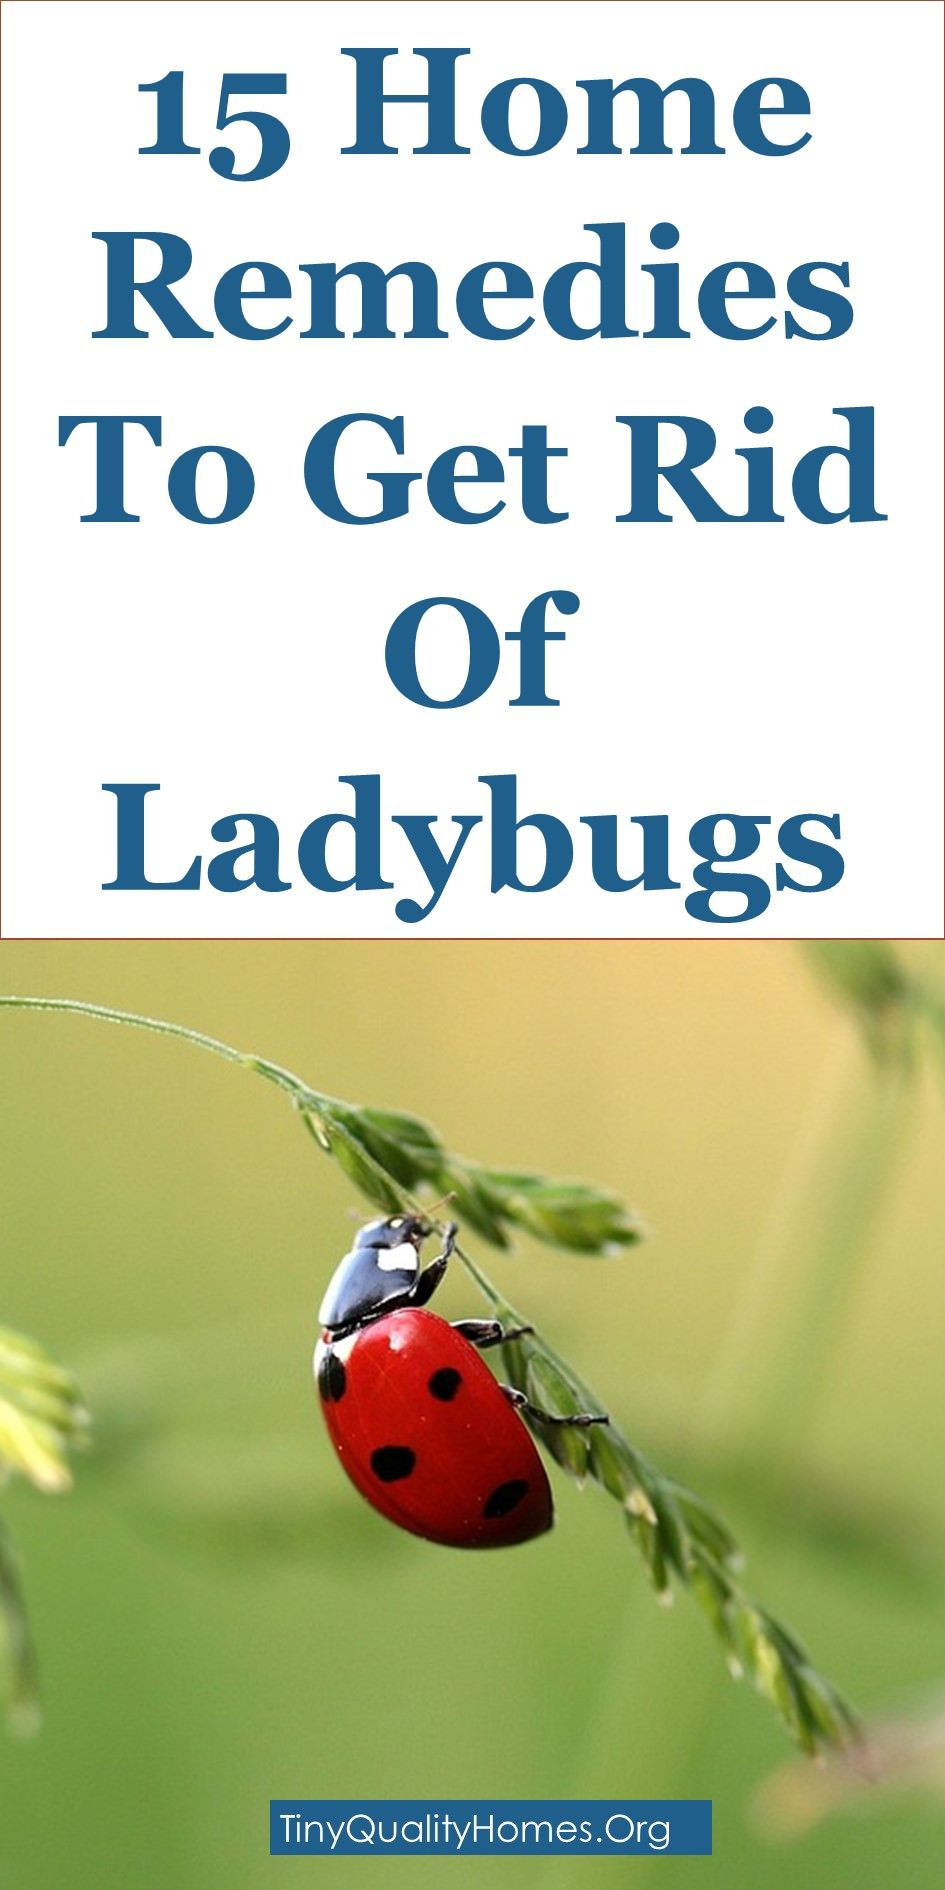 15 Home Remedies To Get Rid Of Ladybugs Asian Lady Beetles This Guide Shares Insights On The Following Ladybug Trap Dawn Lady Beetle Ladybug House Ladybug